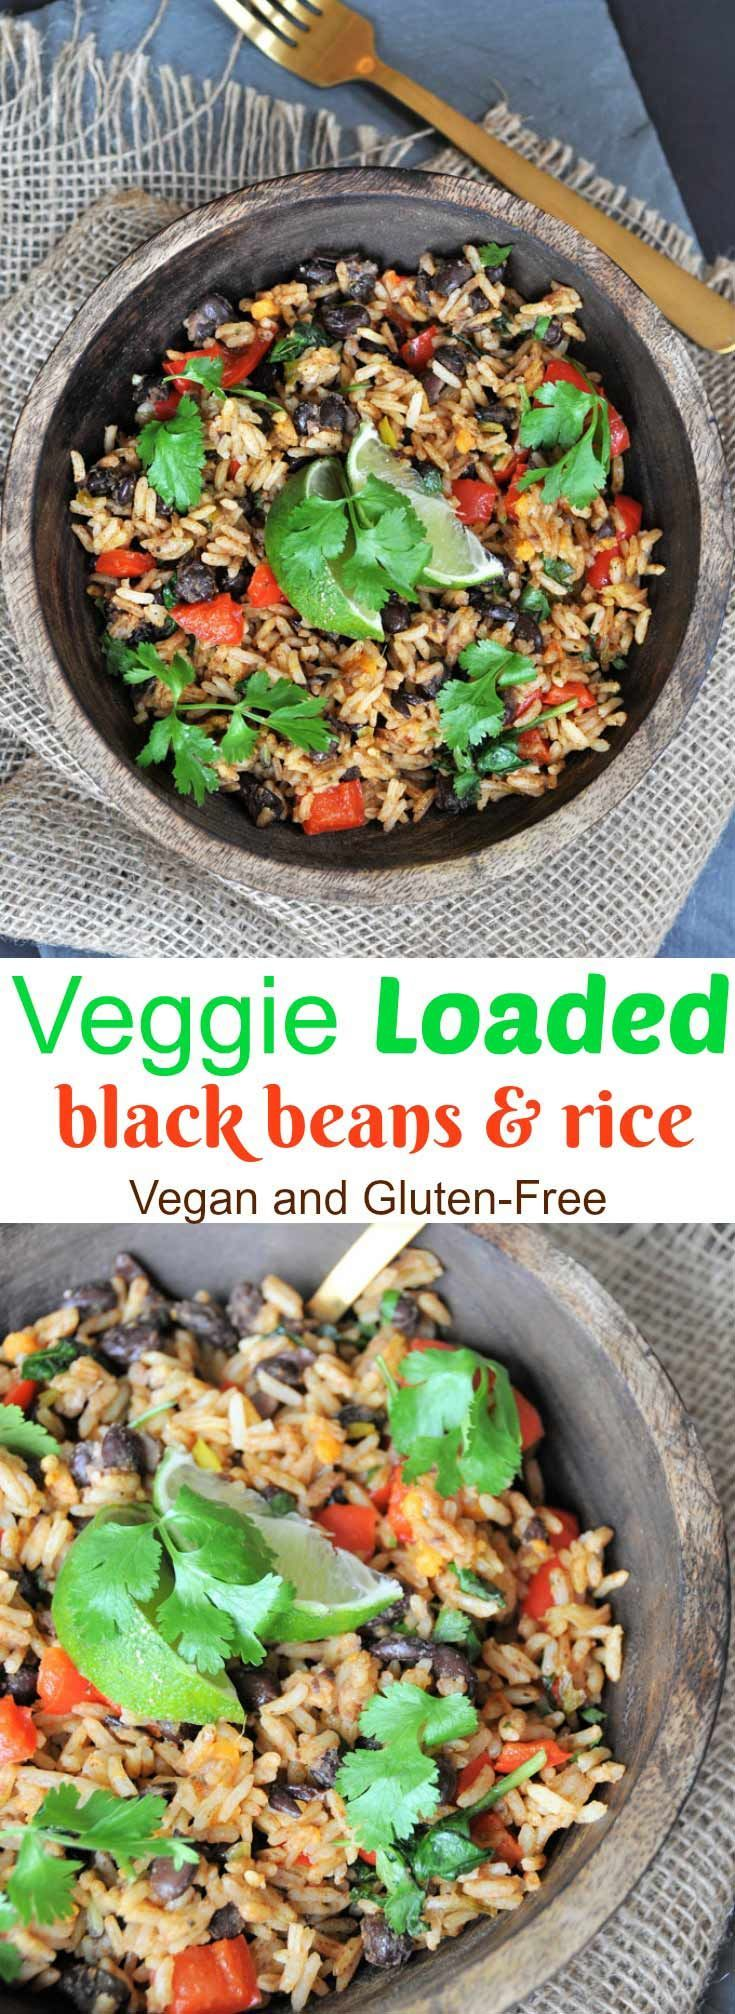 Veggie loaded black beans and rice #plantbasedrecipesforbeginners